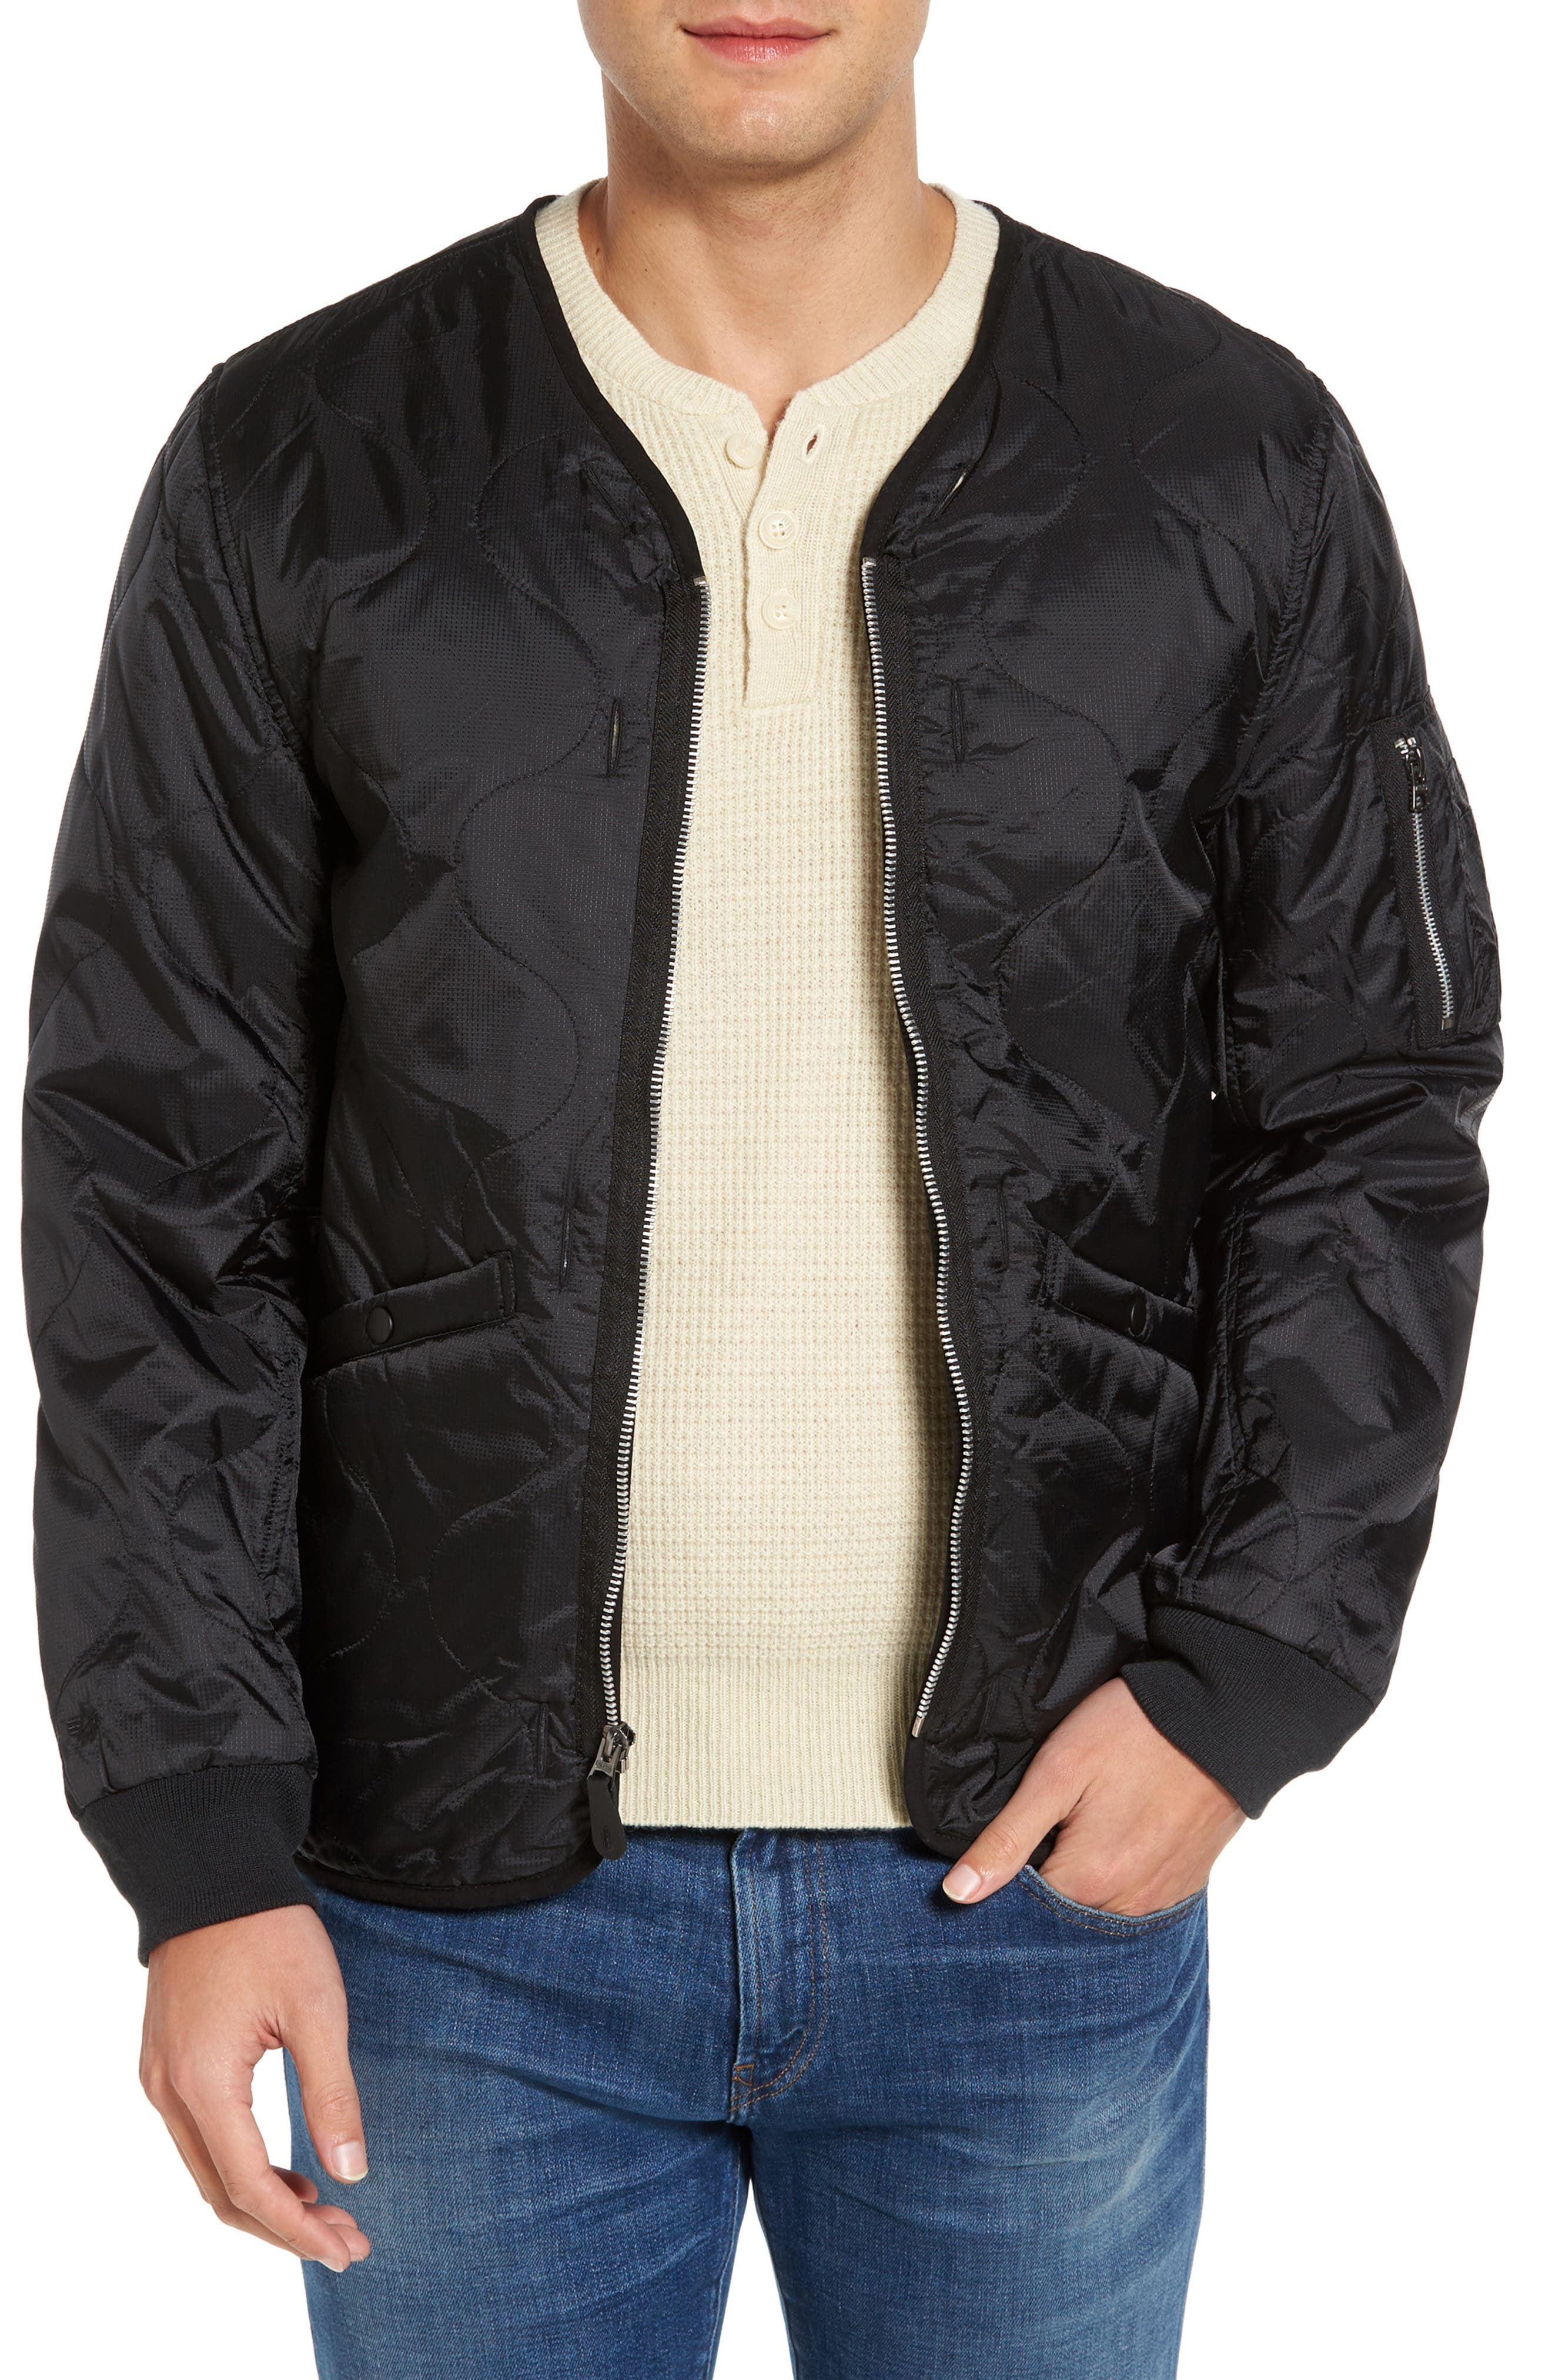 Pioneer Quilted Bomber Jacket,                             Main thumbnail 1, color,                             001